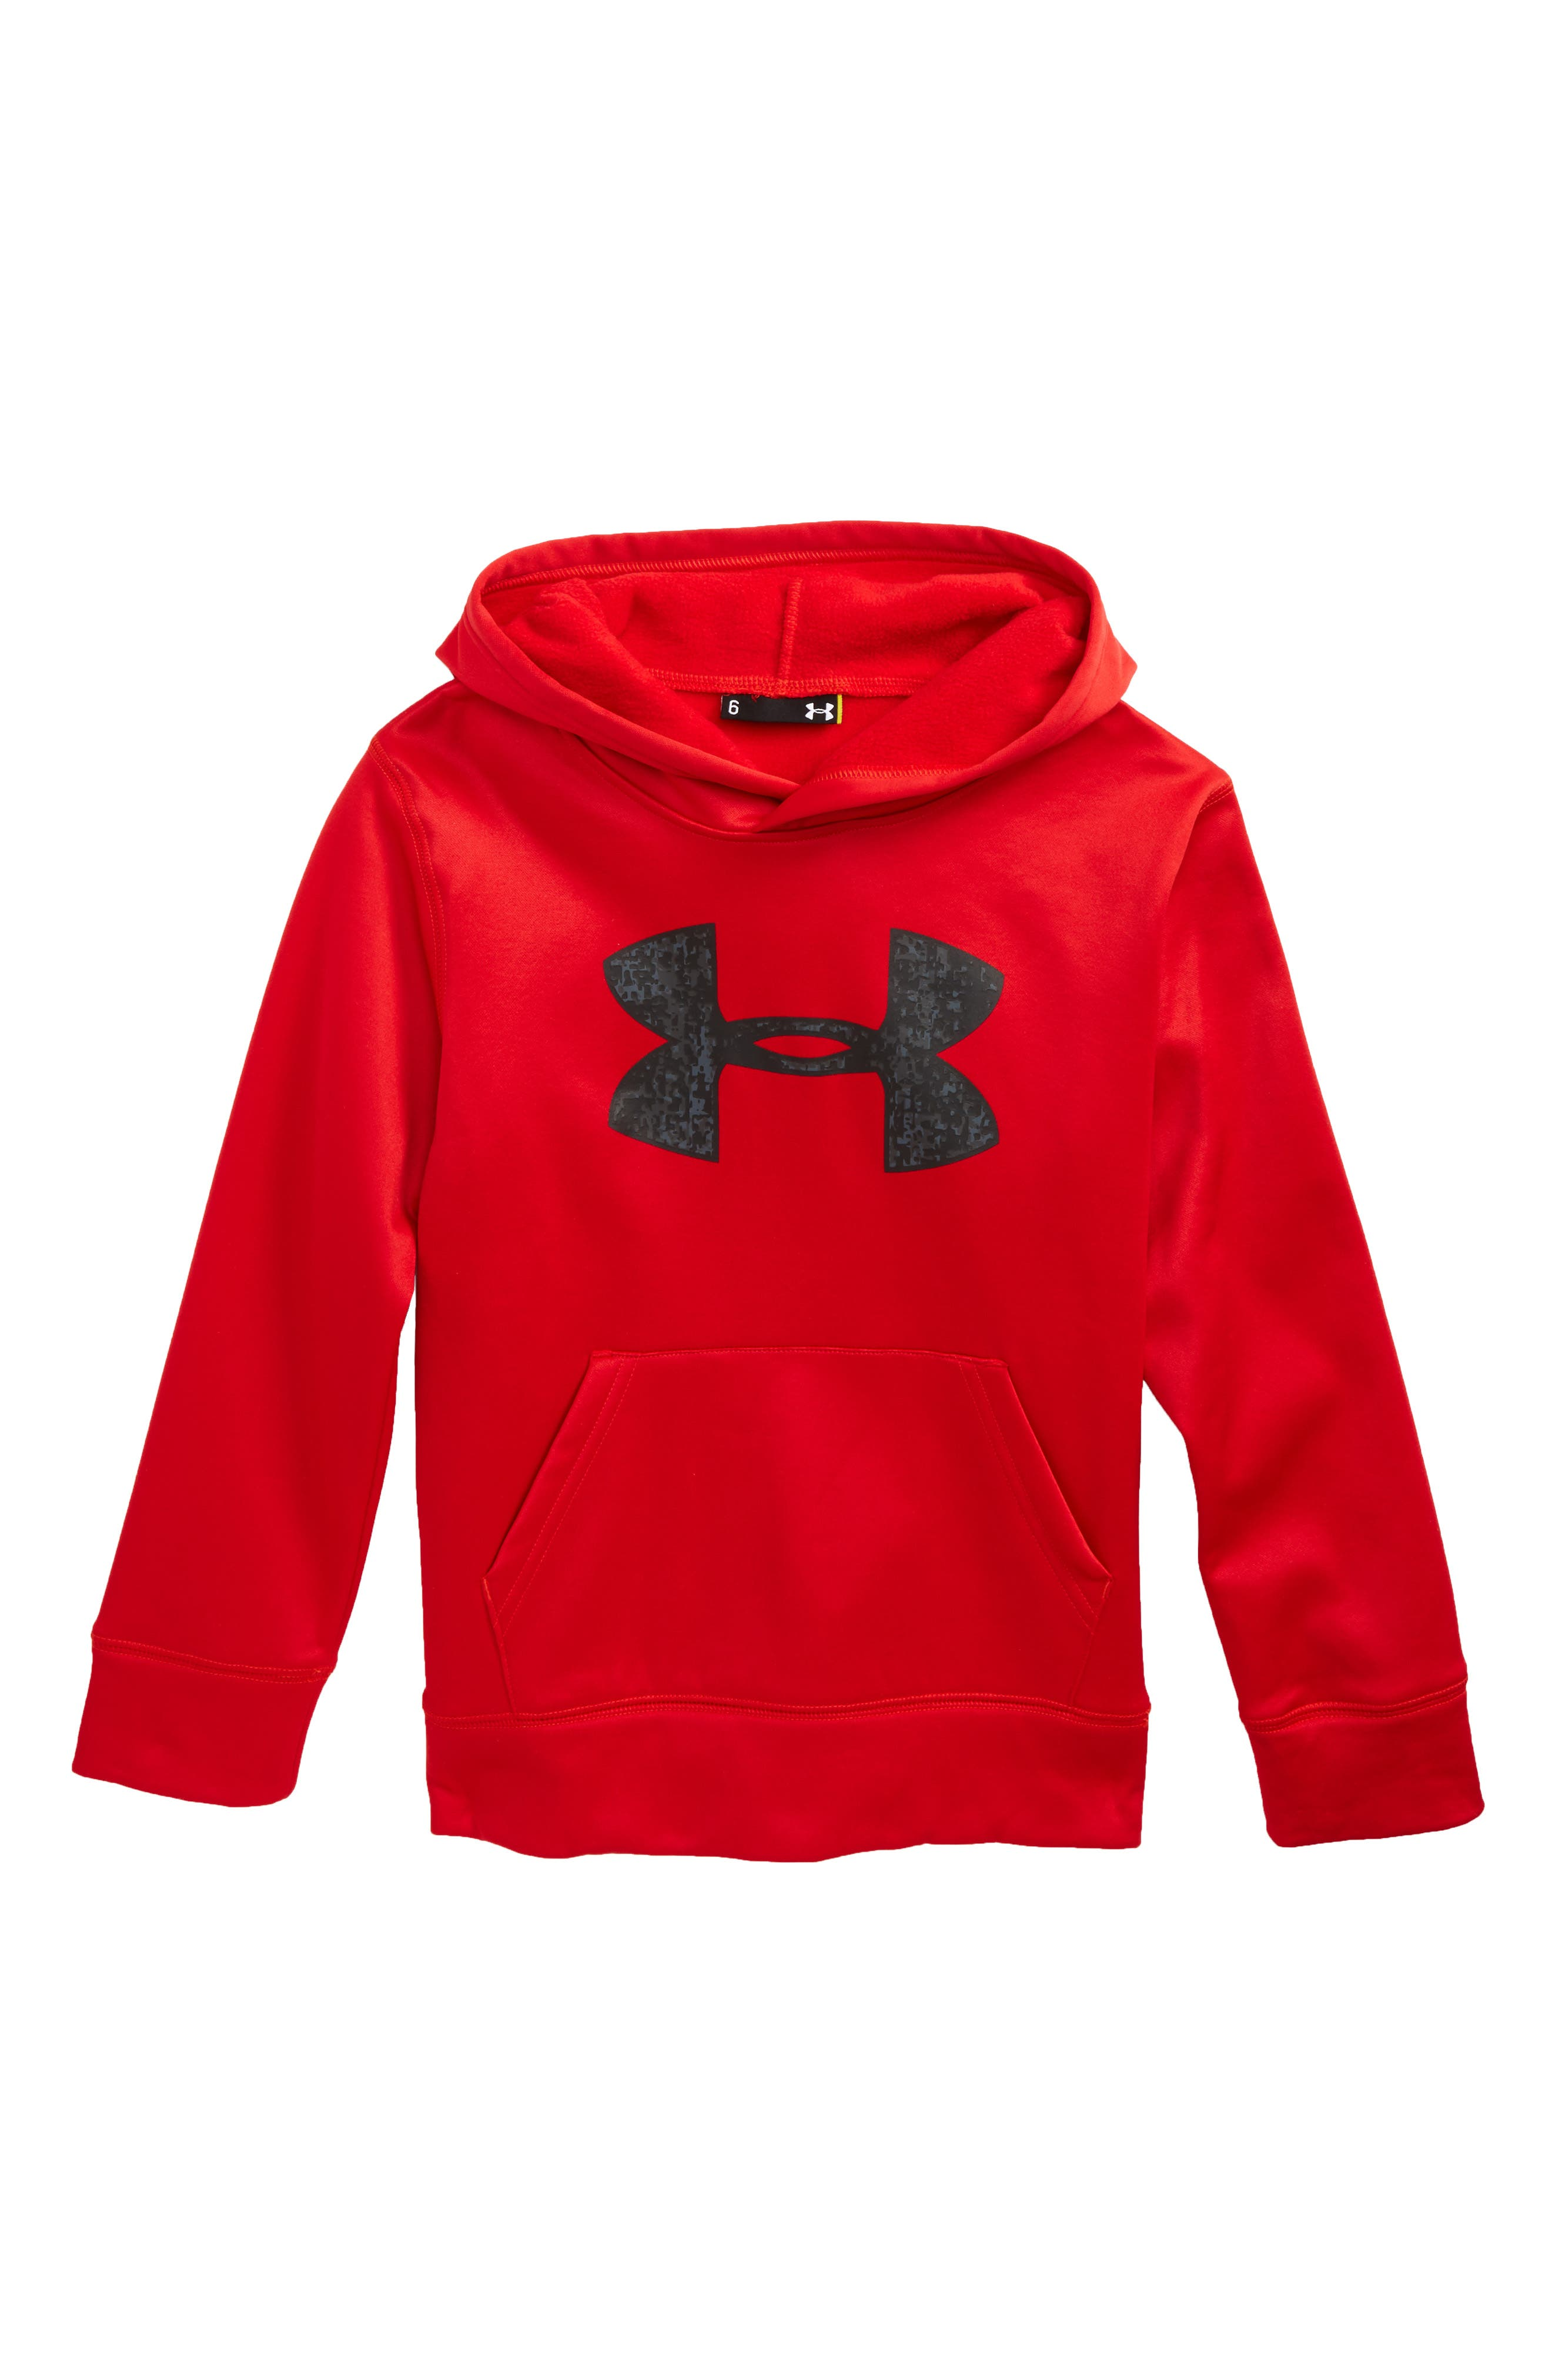 Digital City Logo Pullover Hoodie,                             Main thumbnail 1, color,                             Red